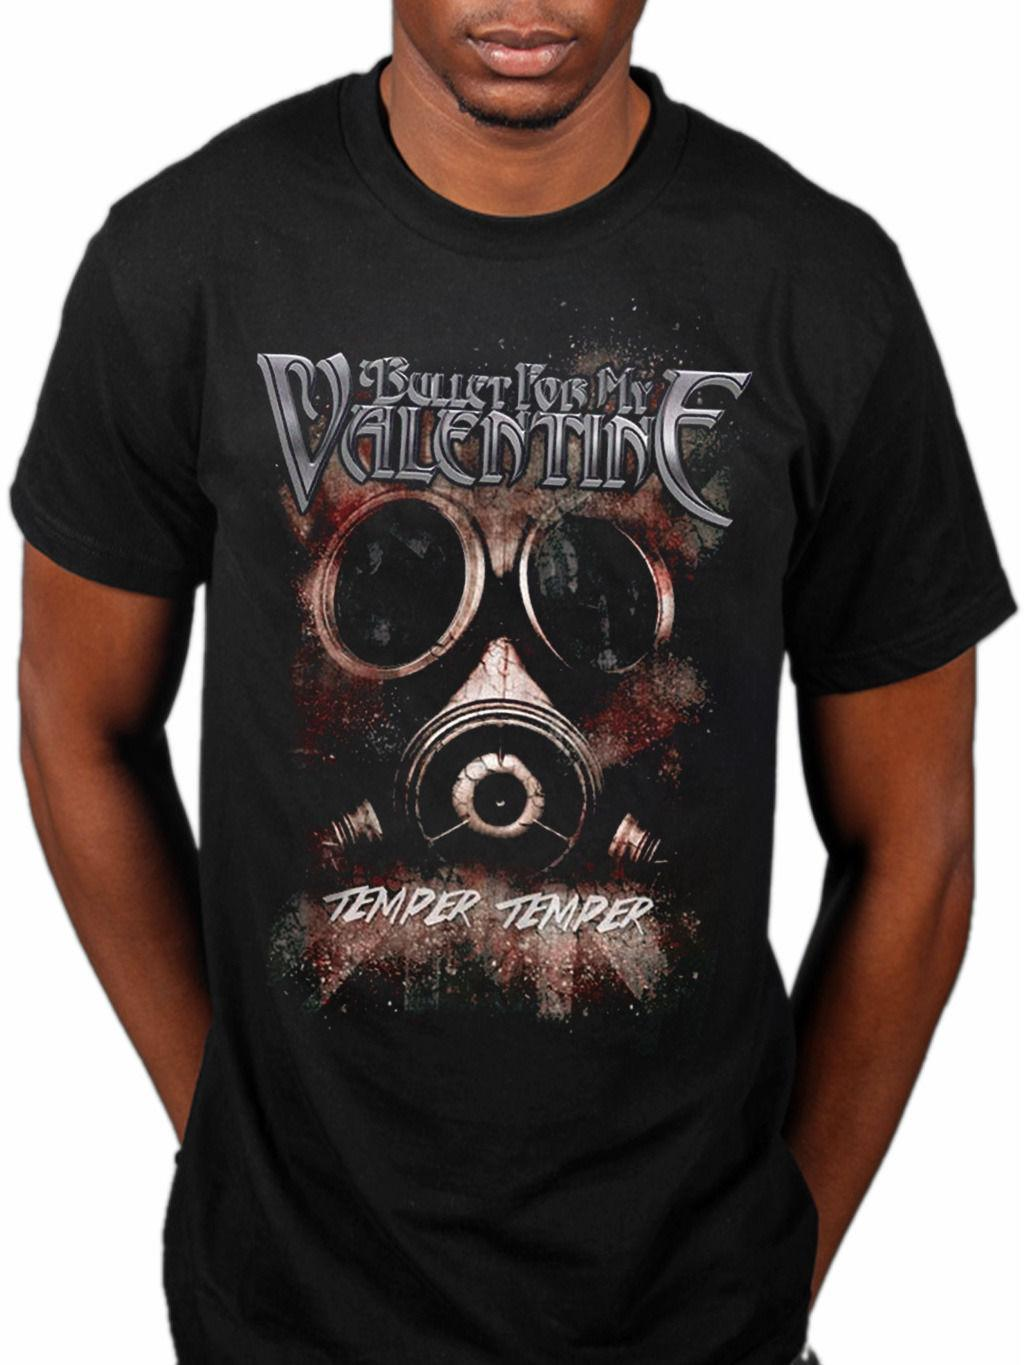 Official Bullet For My Valentine Temper Temper Gas Mask T Shirt New